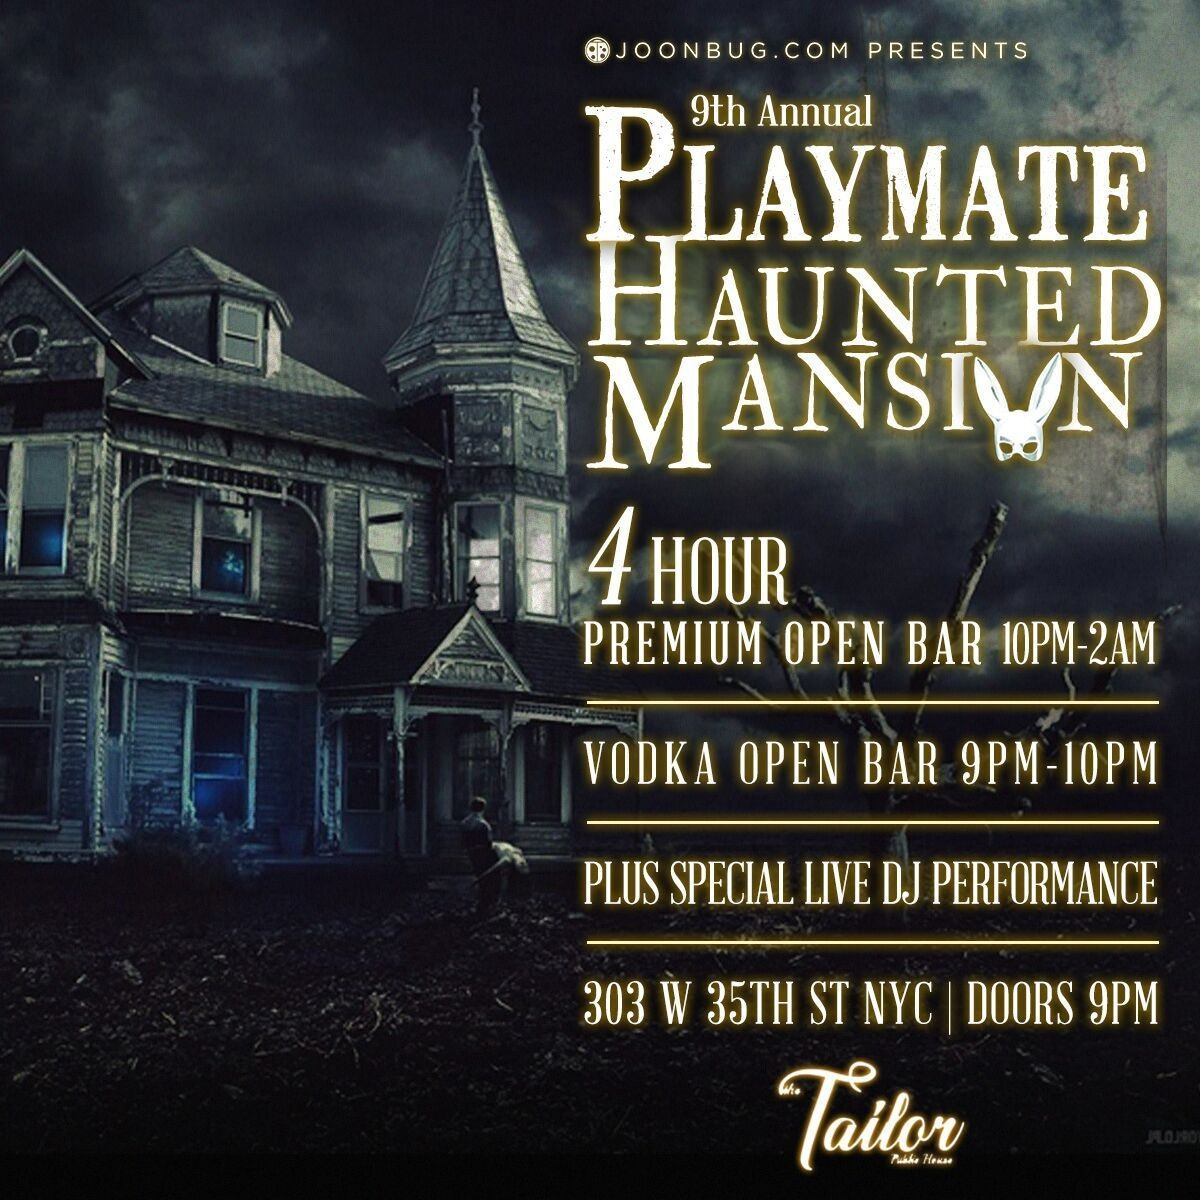 The Official Playmate Haunted Mansion